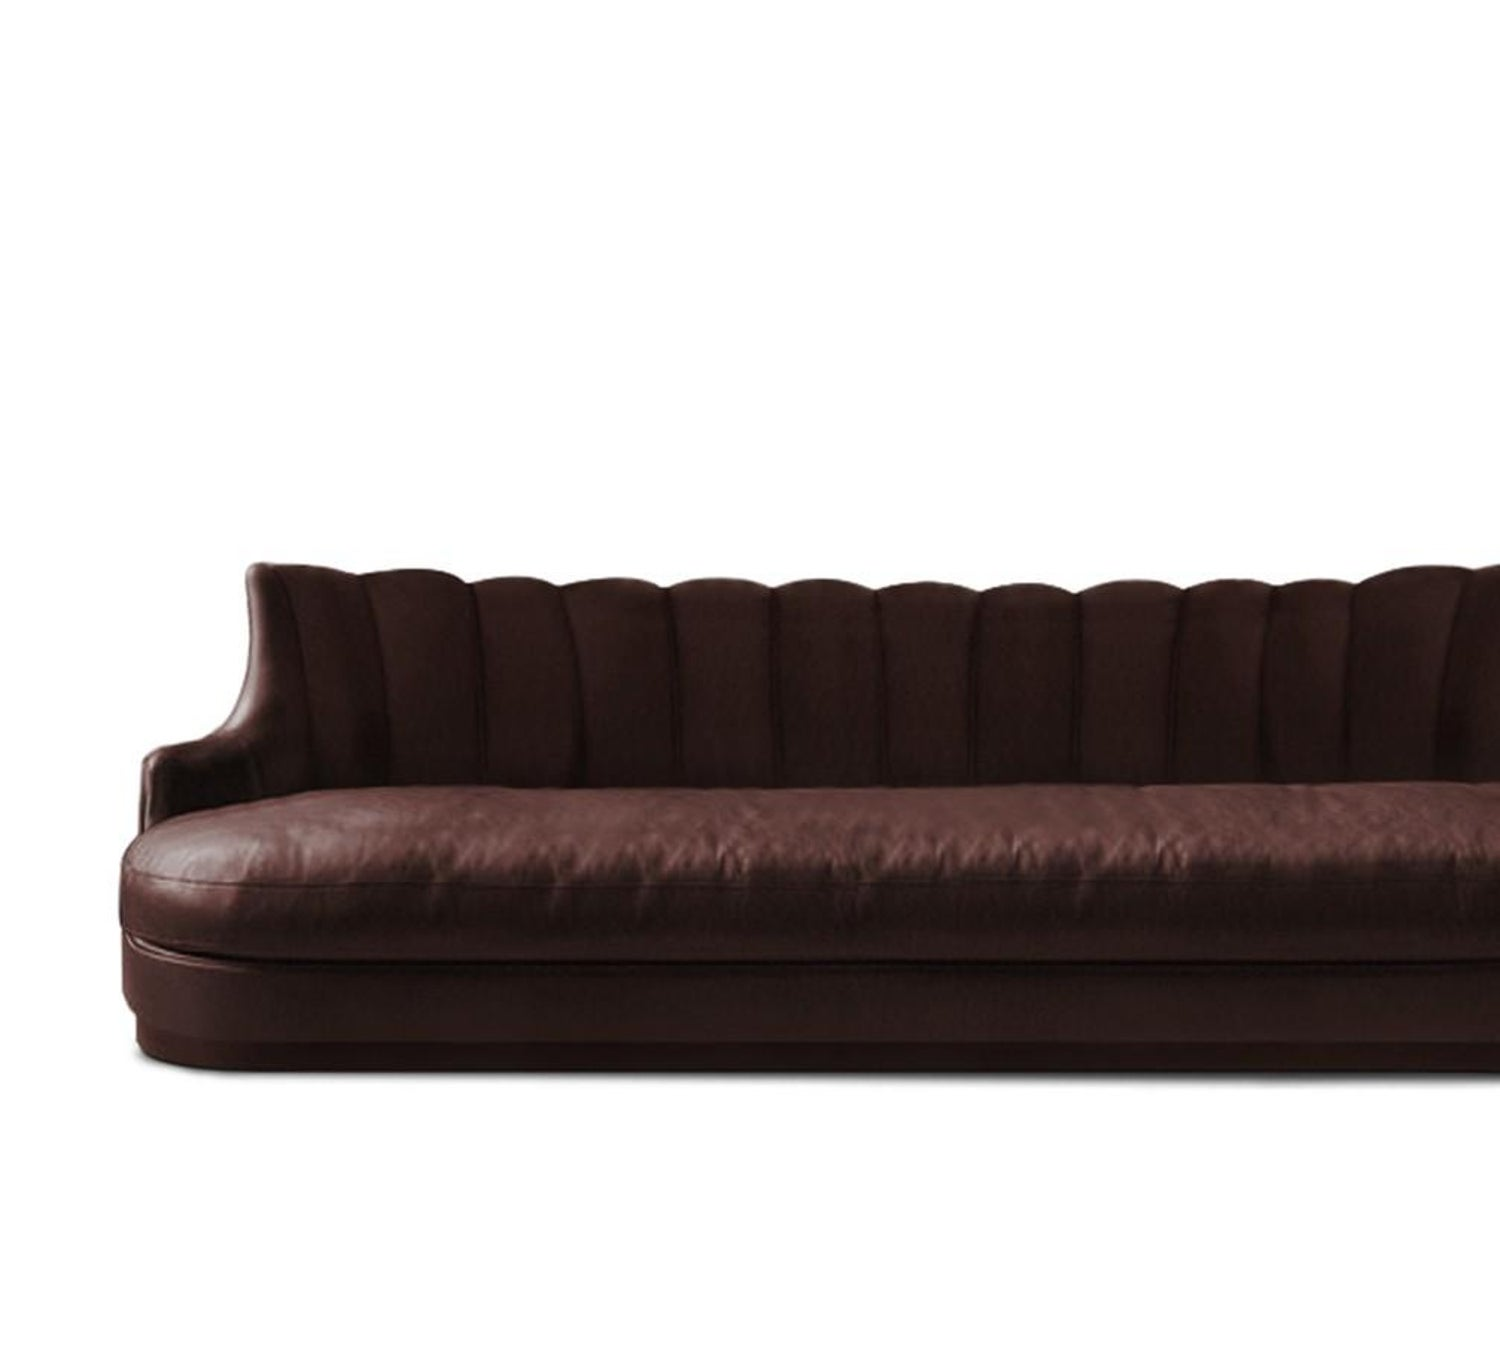 Plum Sofa In Faux Leather And Fully